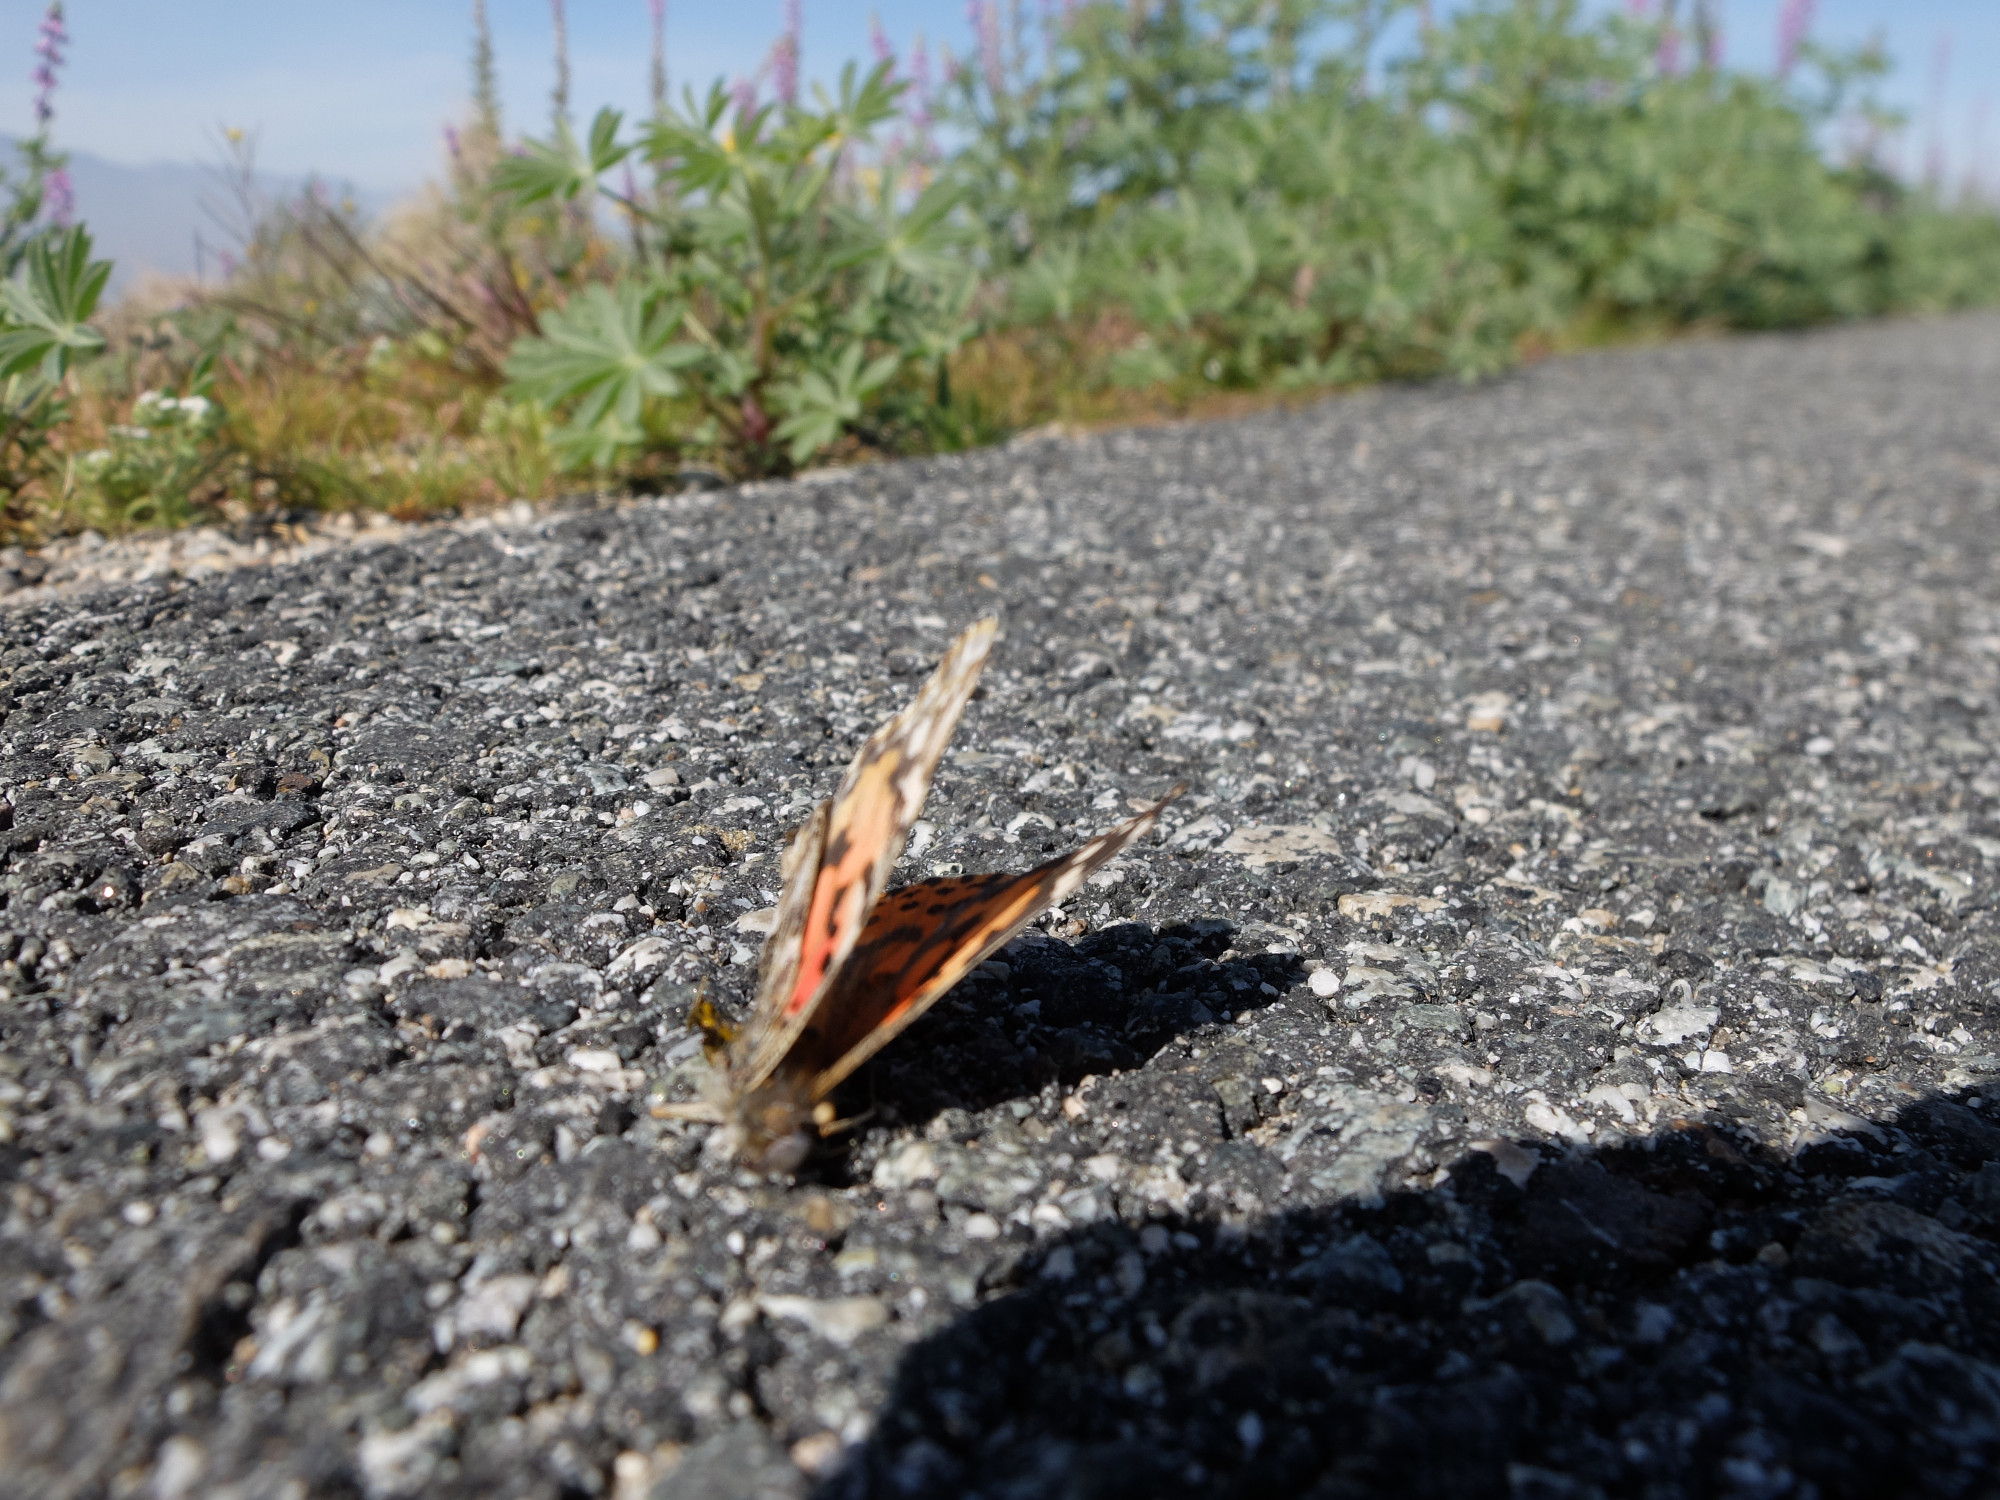 Dead Painted Lady, on shoulder of Hwy 111 by the Salton Sea